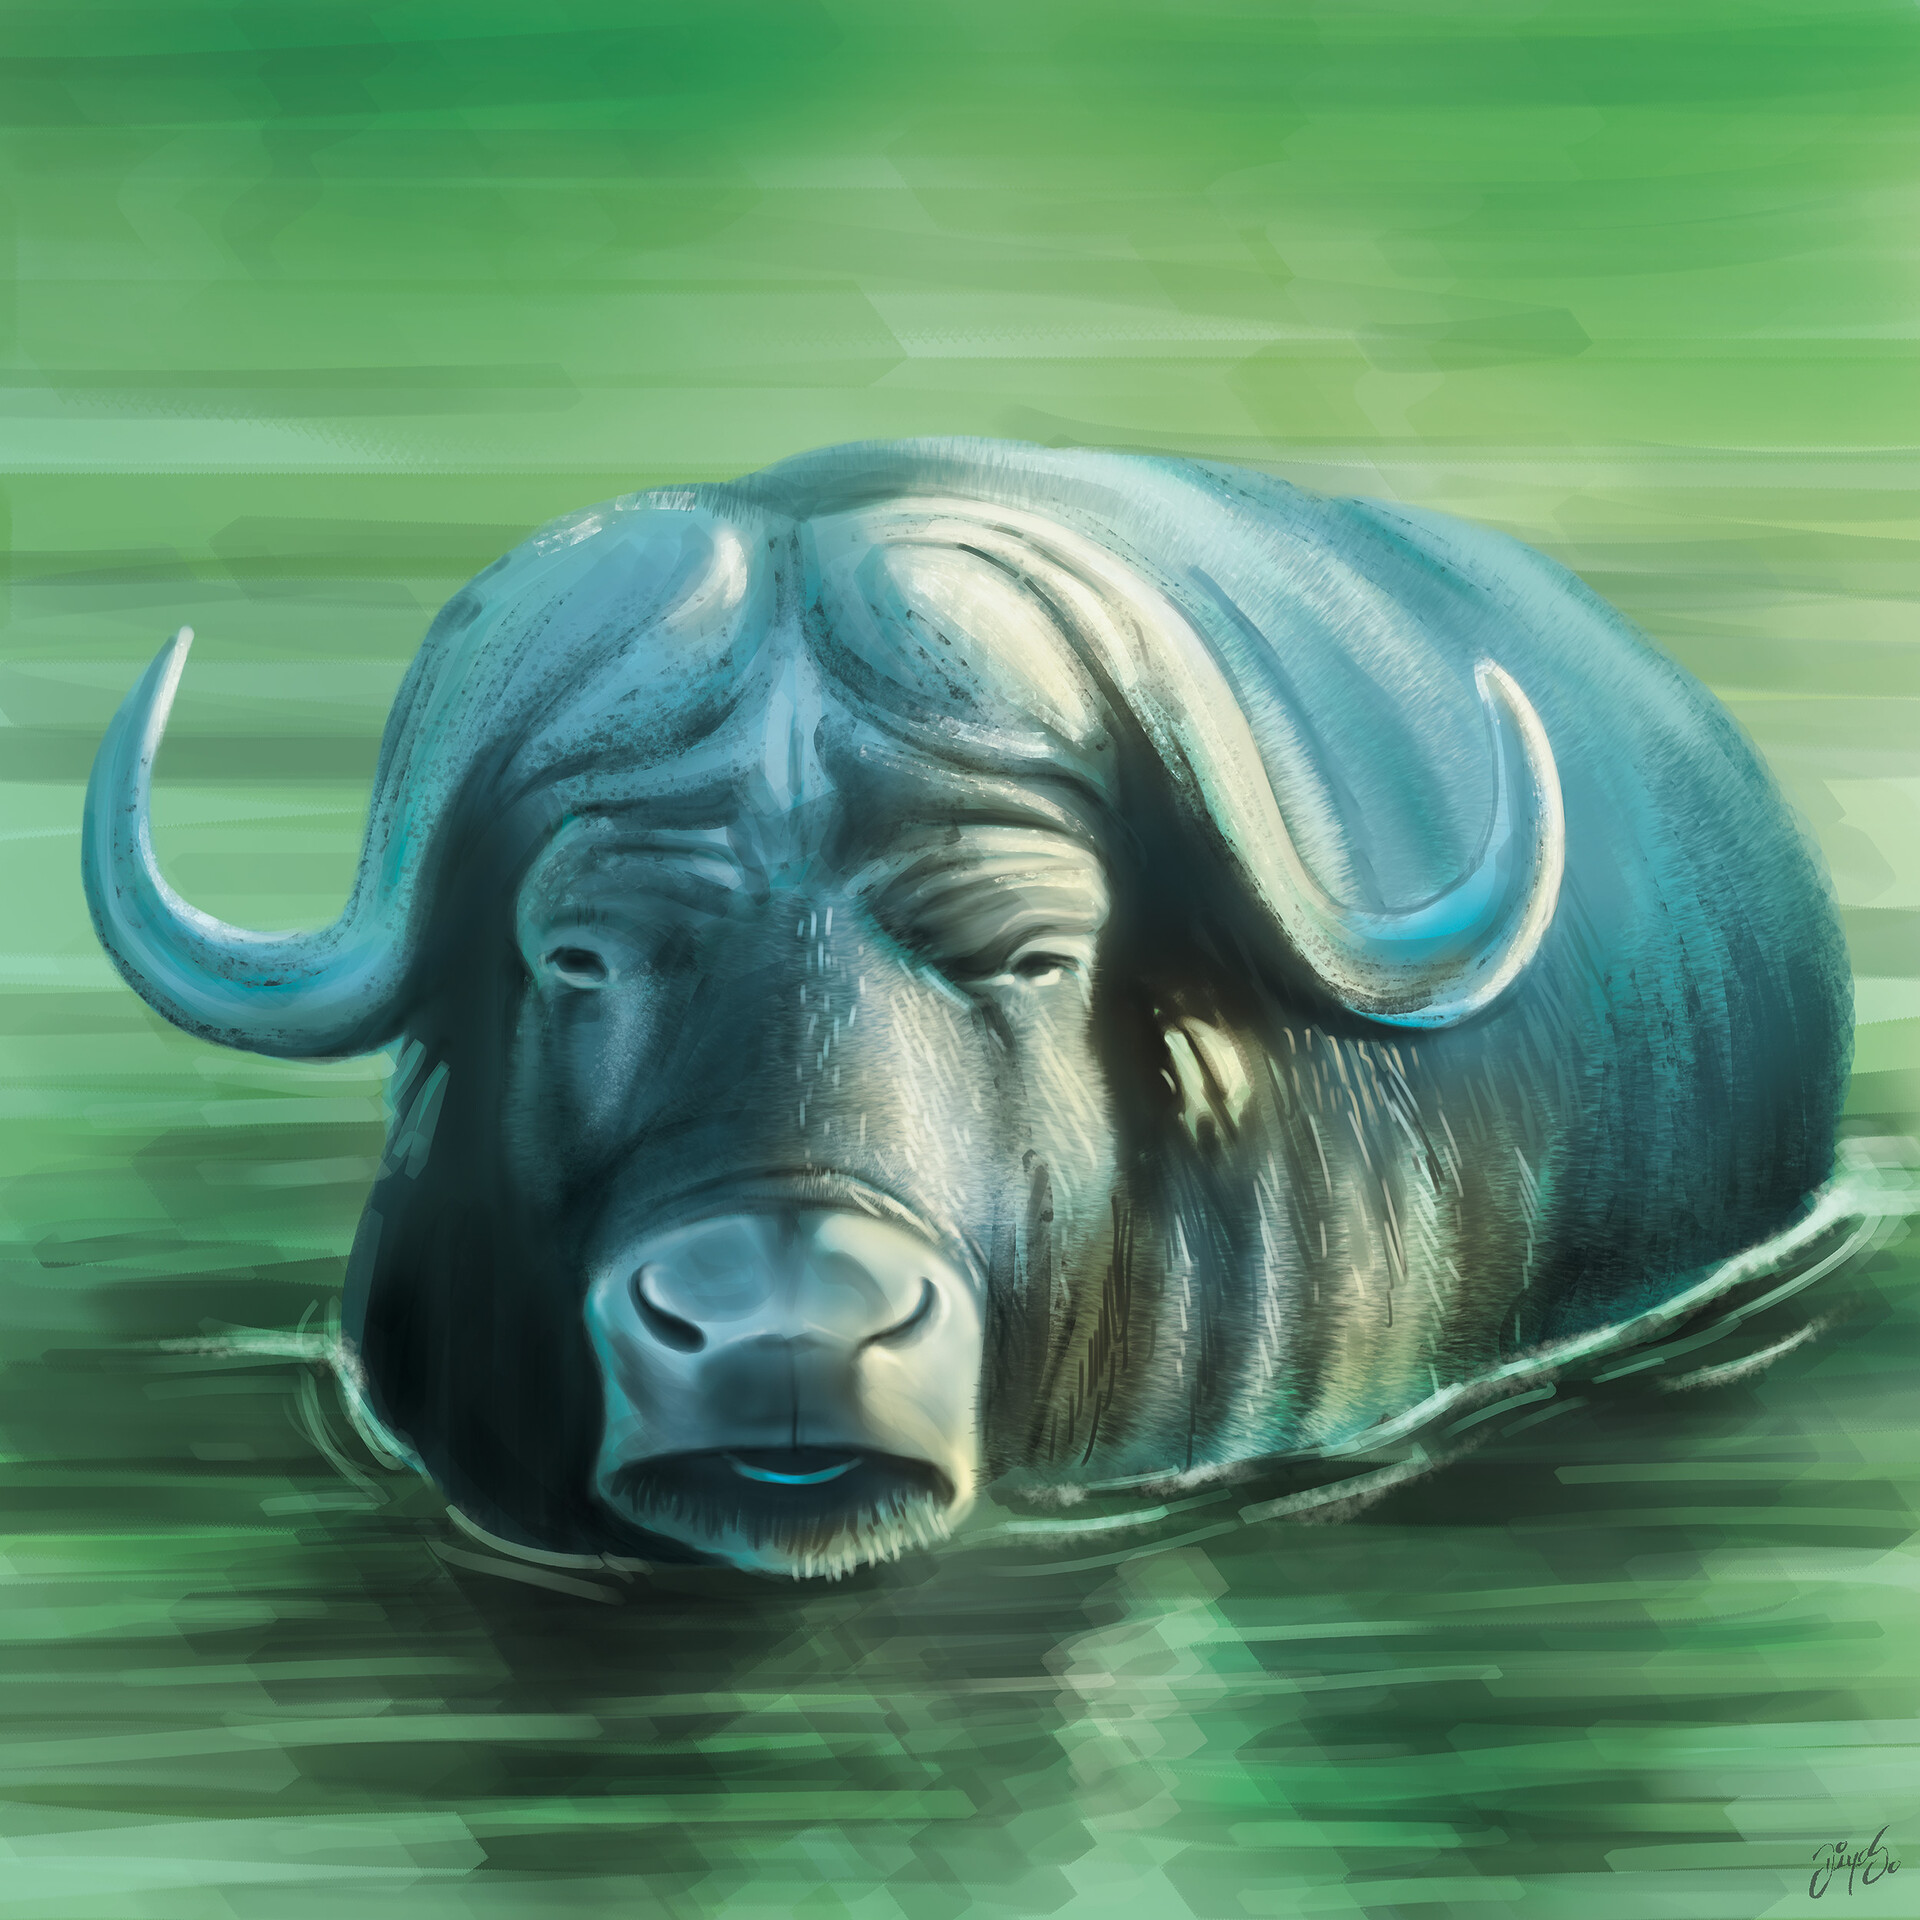 Tile illustration - Water buffalo